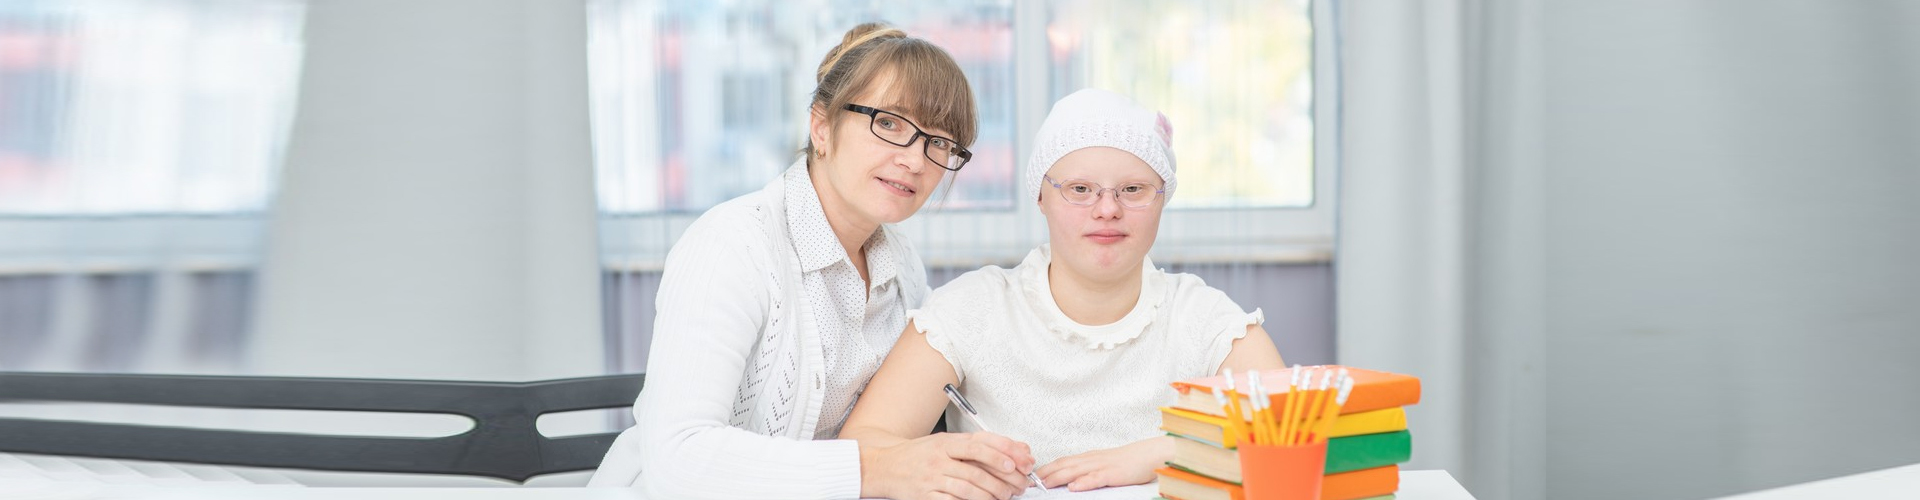 Portrait of happy teacher and girl with Down Syndrome at school